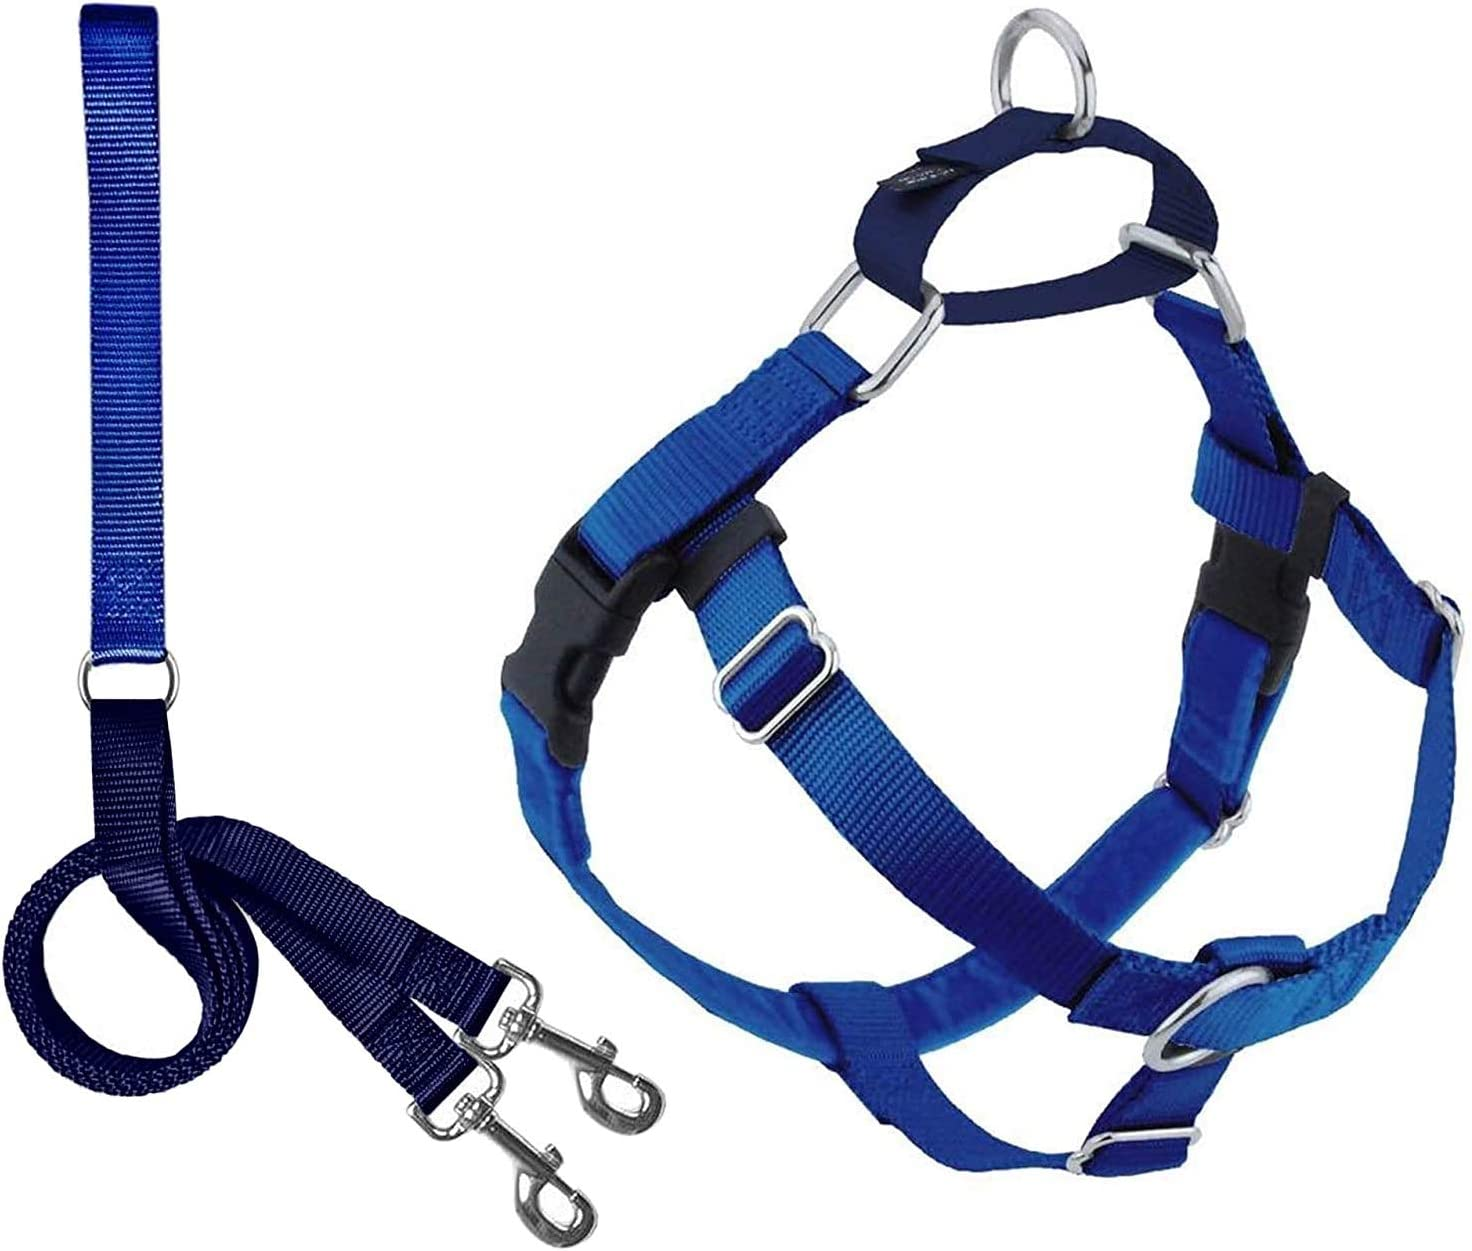 2 Hounds Design Freedom No Gentle Pull Super special Max 46% OFF price Harness Adjustable Dog